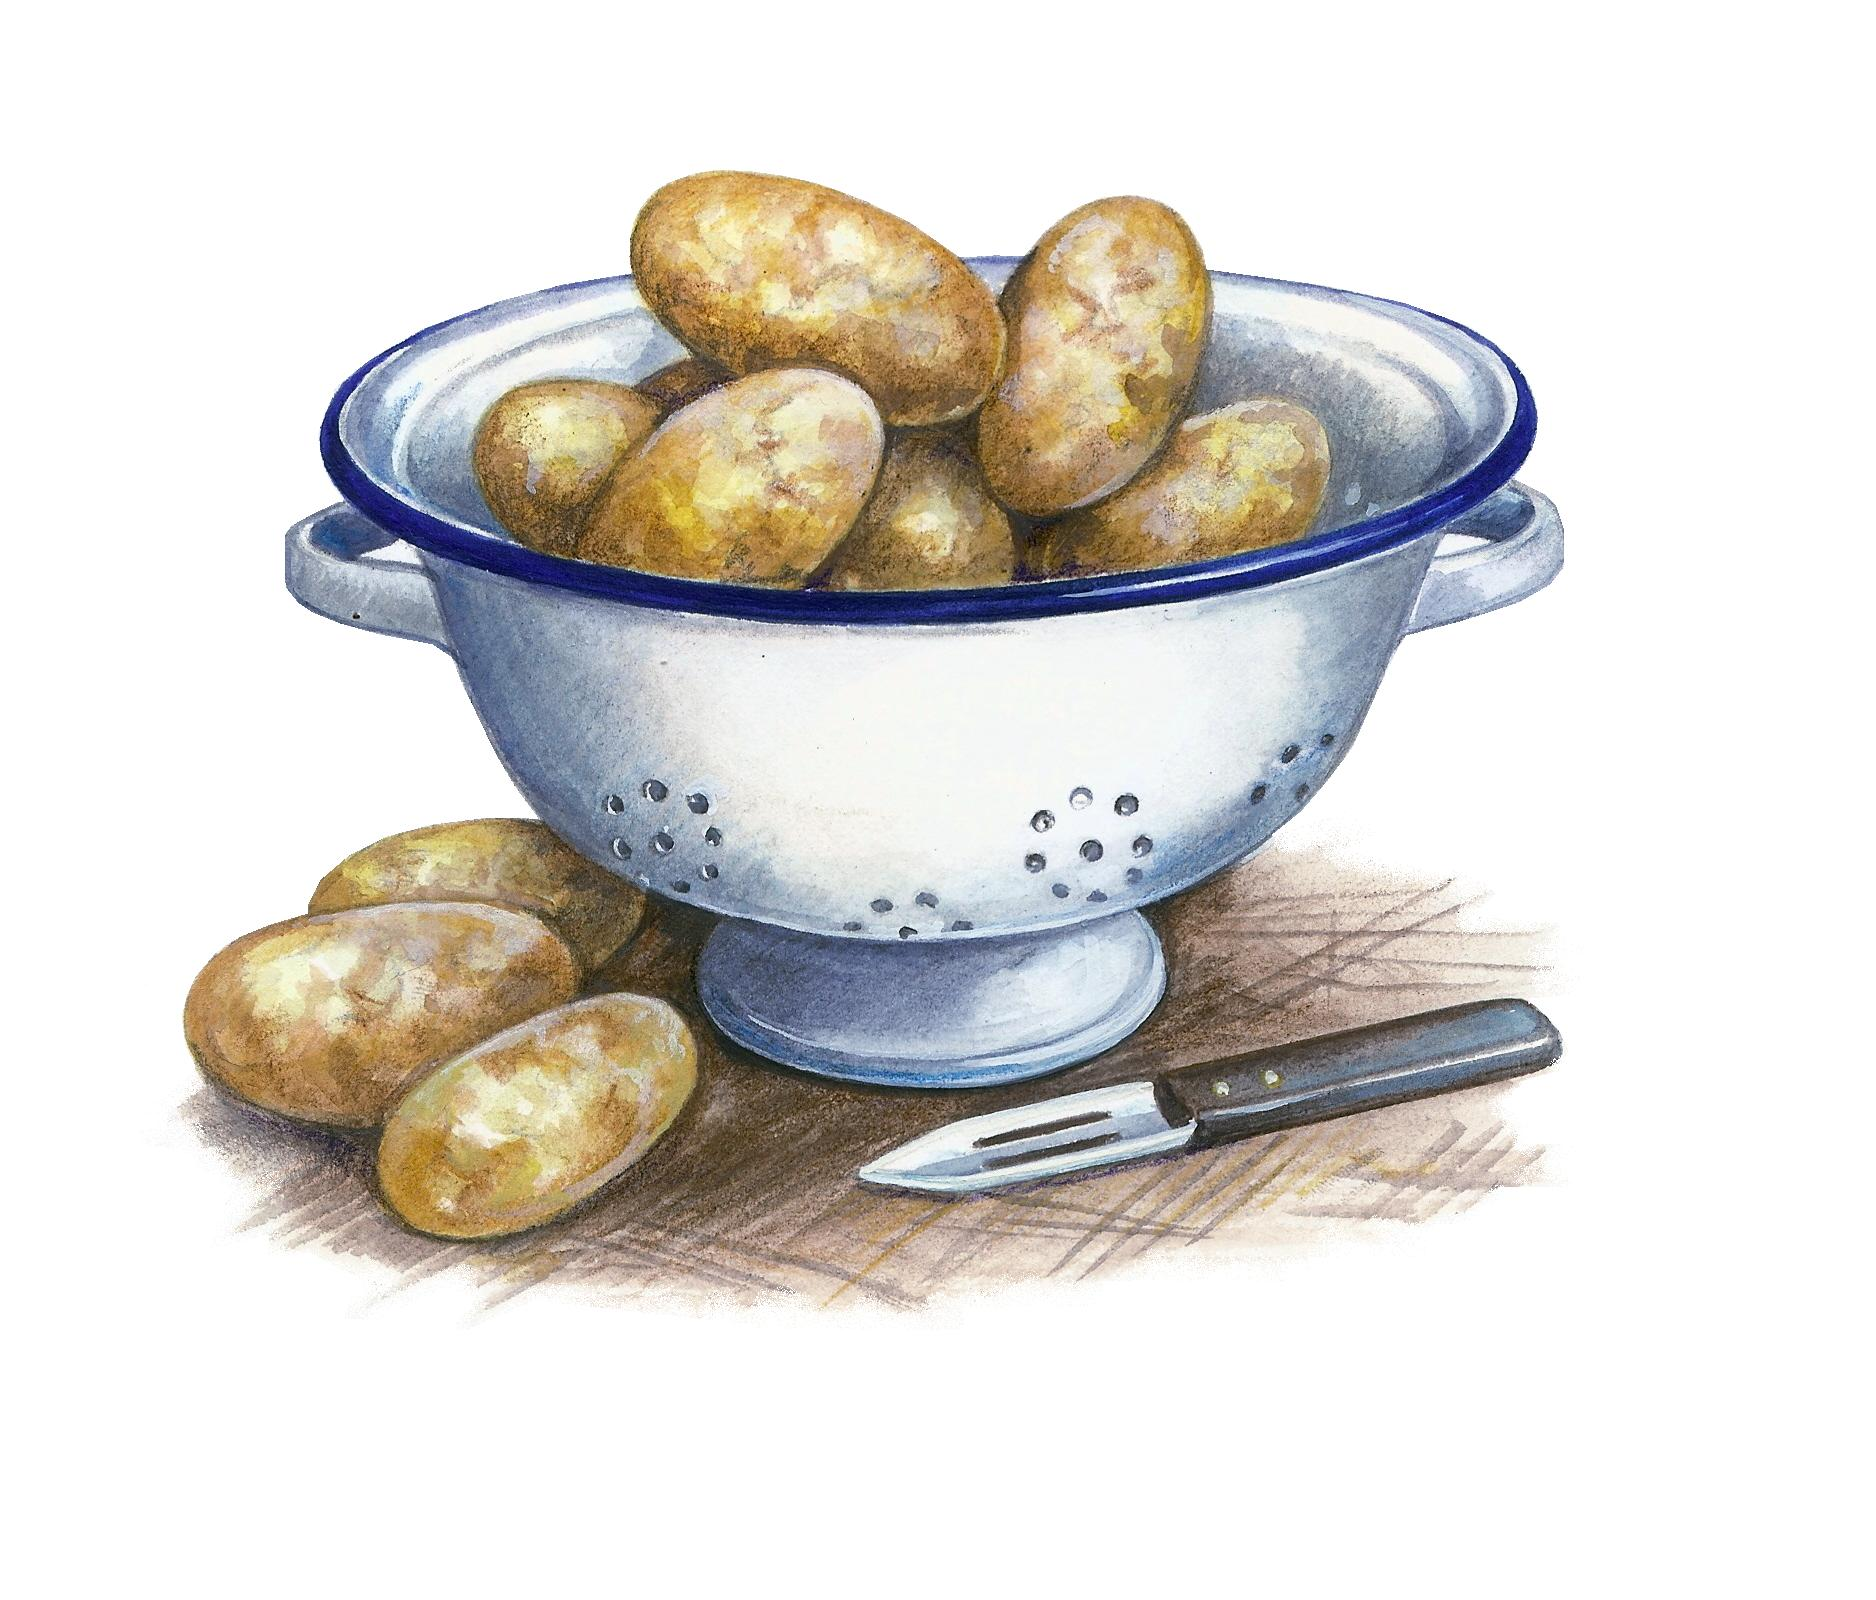 Jersey Royal Potatoes Artwork